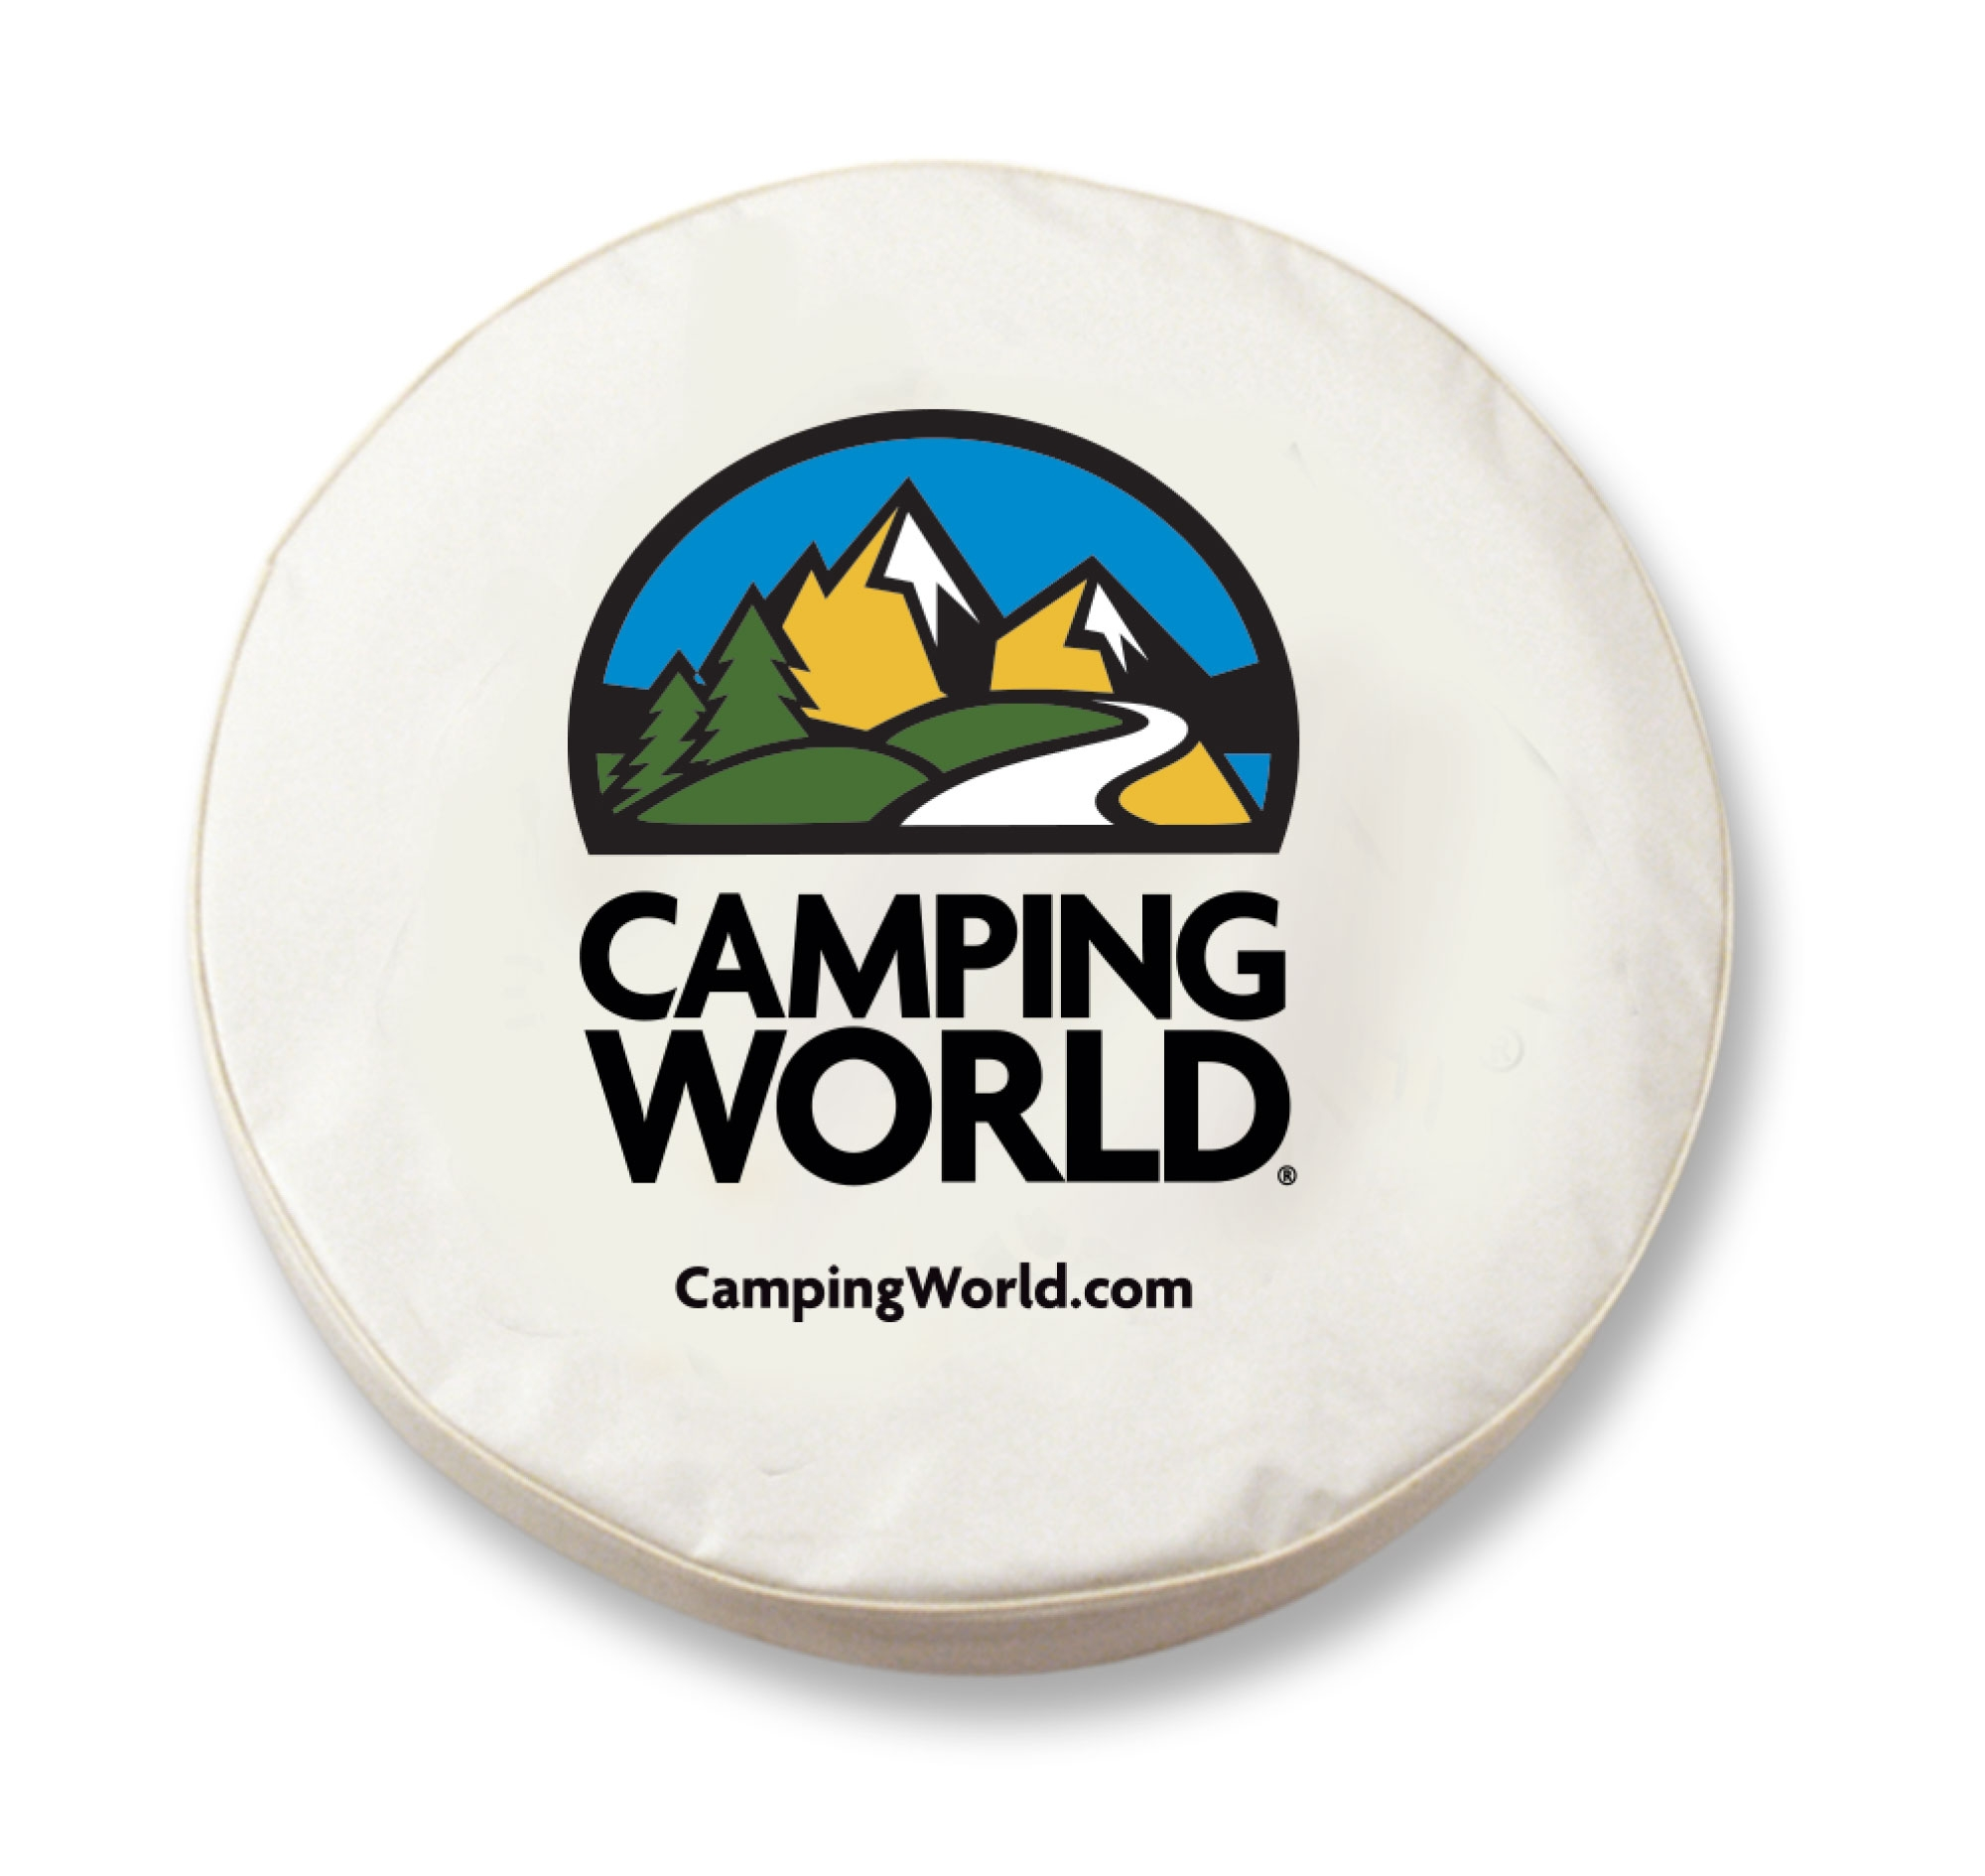 Camping World Dealer Imprint Tire Cover